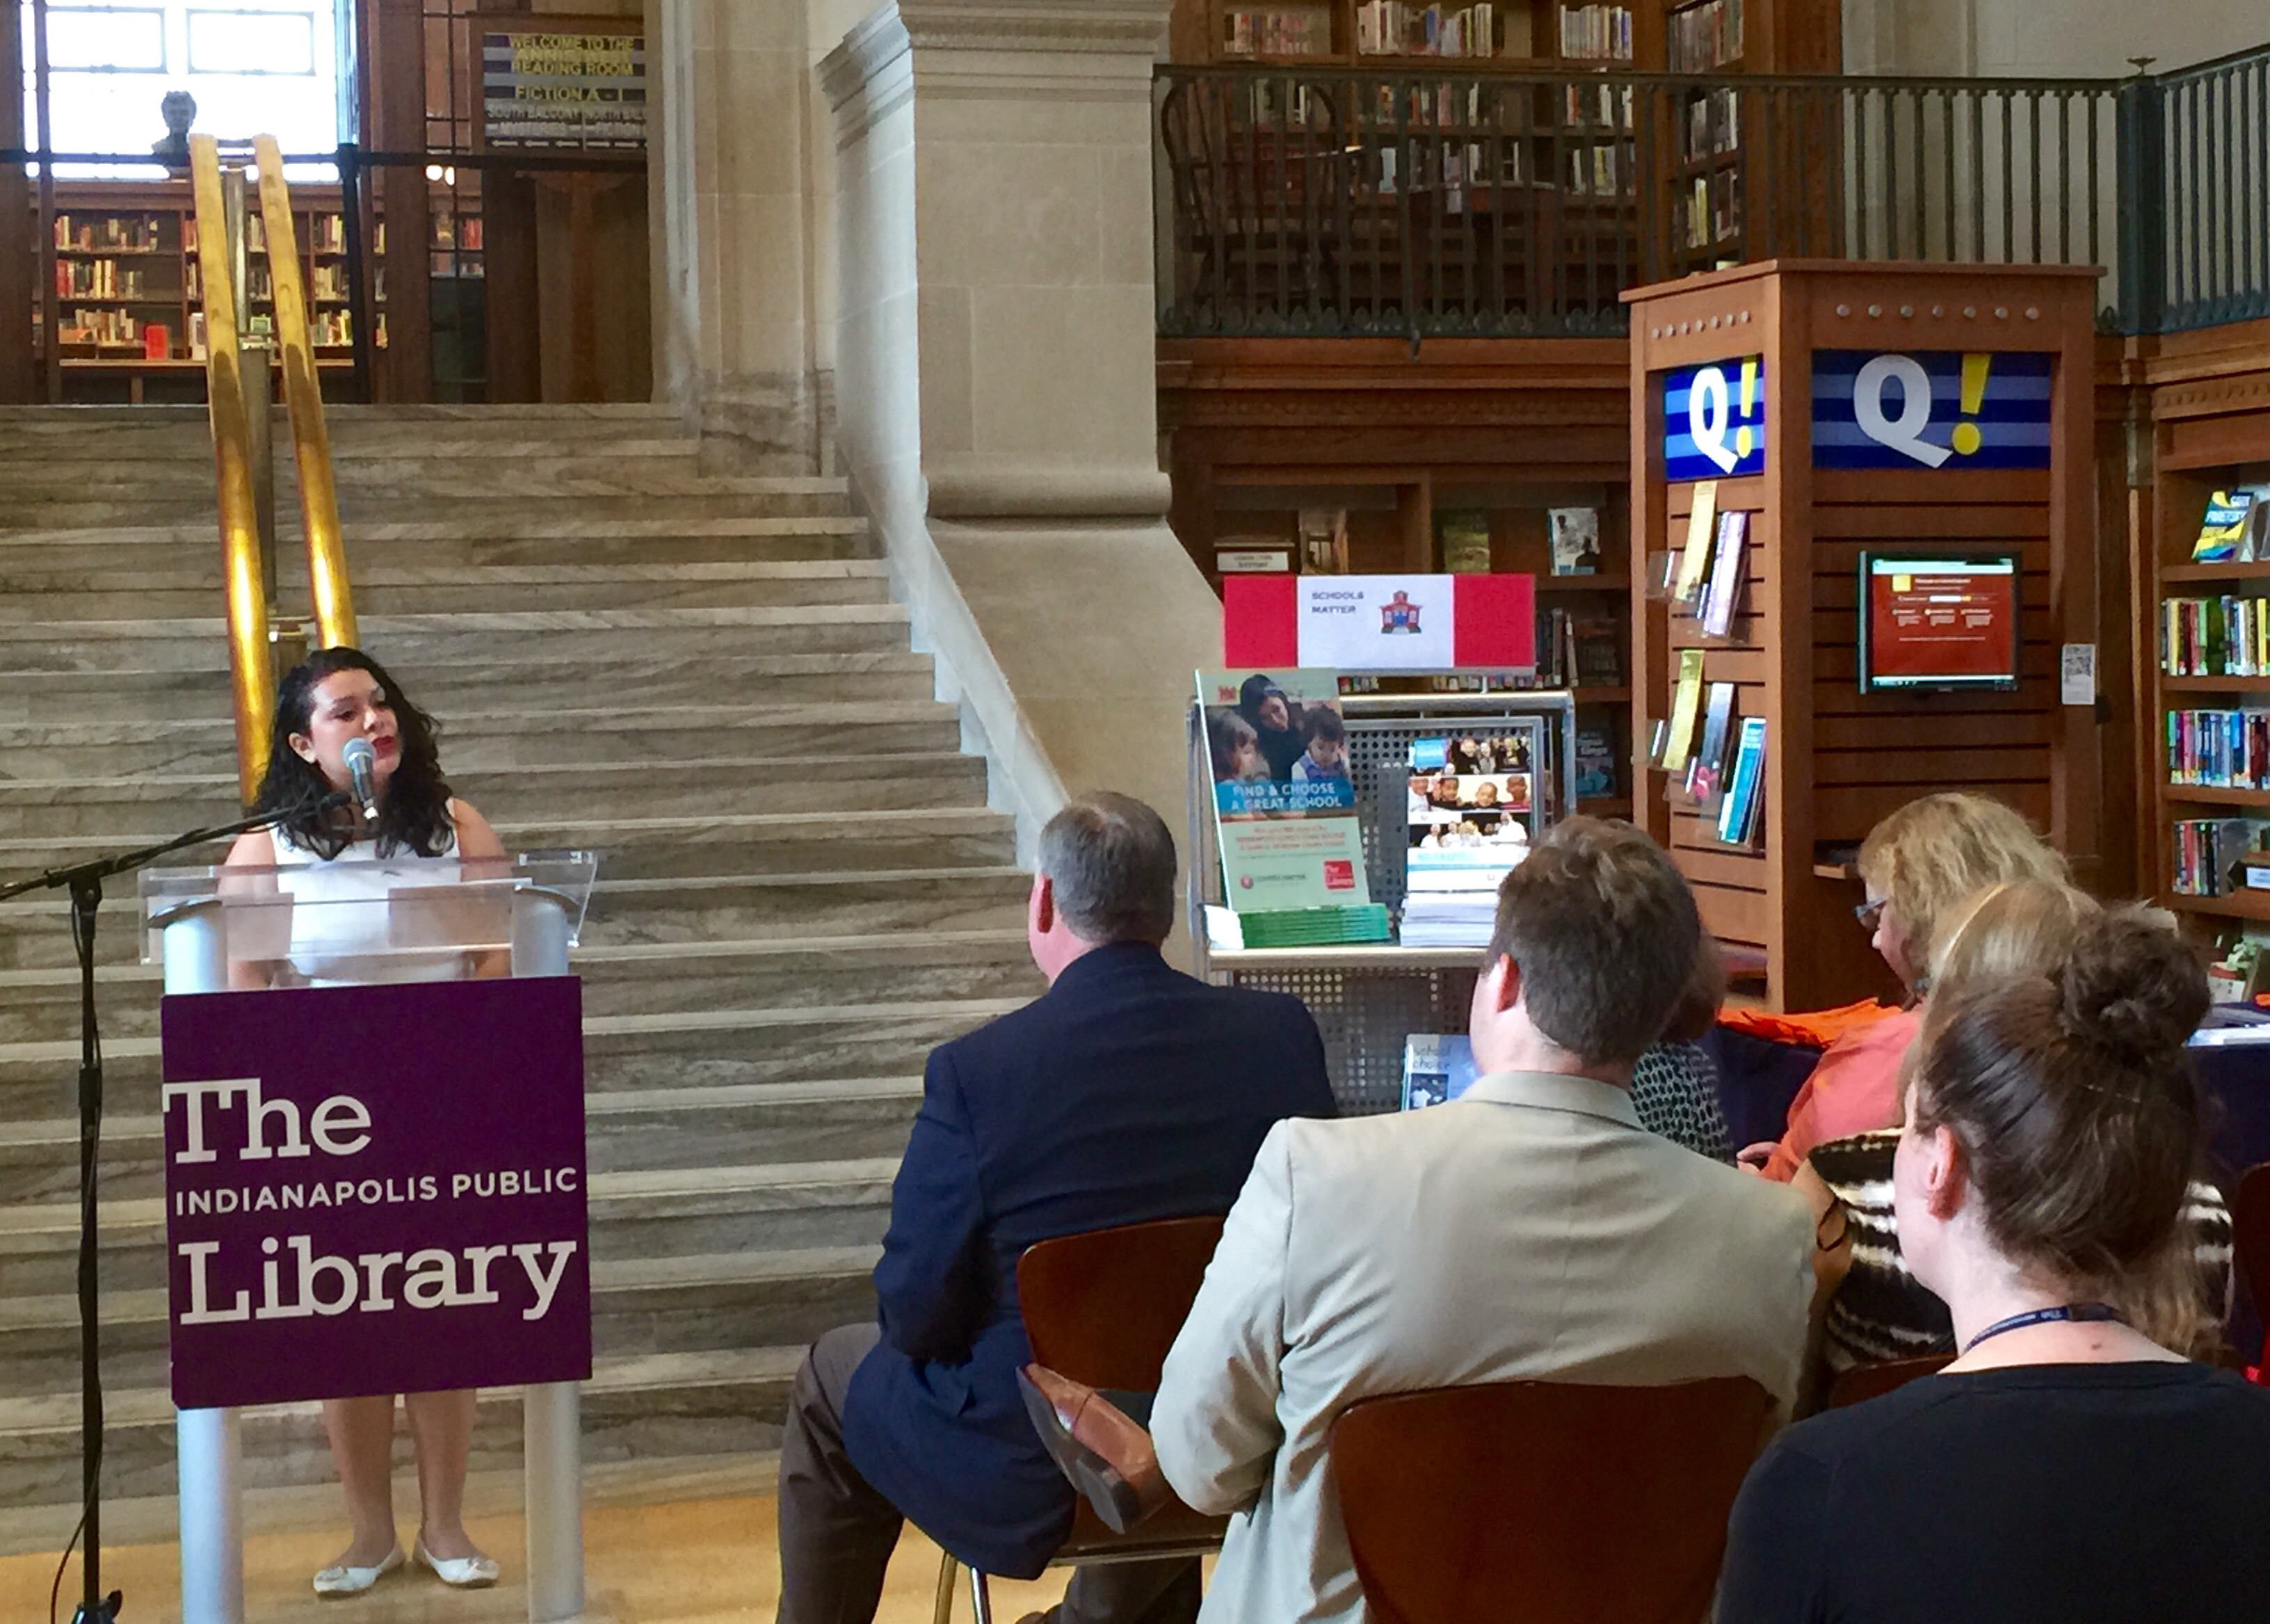 Lesvi De La Cruz speaks to a small crowd Tuesday at Central Library about how GreatSchools.org helped her find the best school for her son when she moved to Indianapolis in 2012.